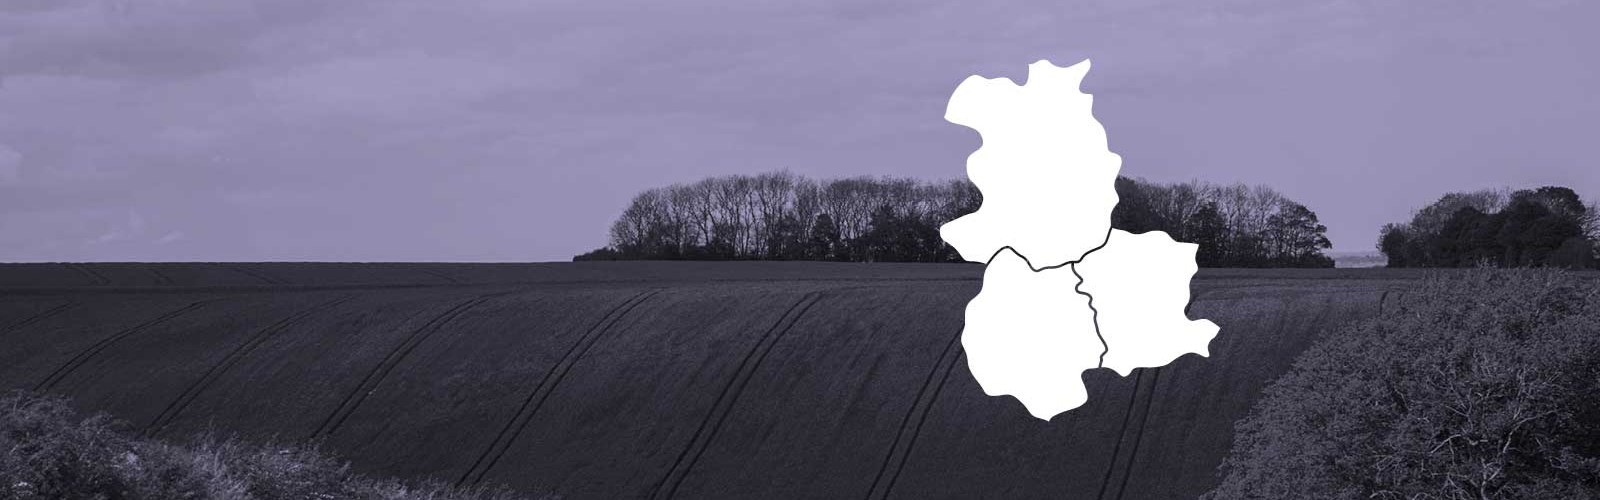 Photo of the countryside with a white map of Hereford, Shropshire and Worcestershire